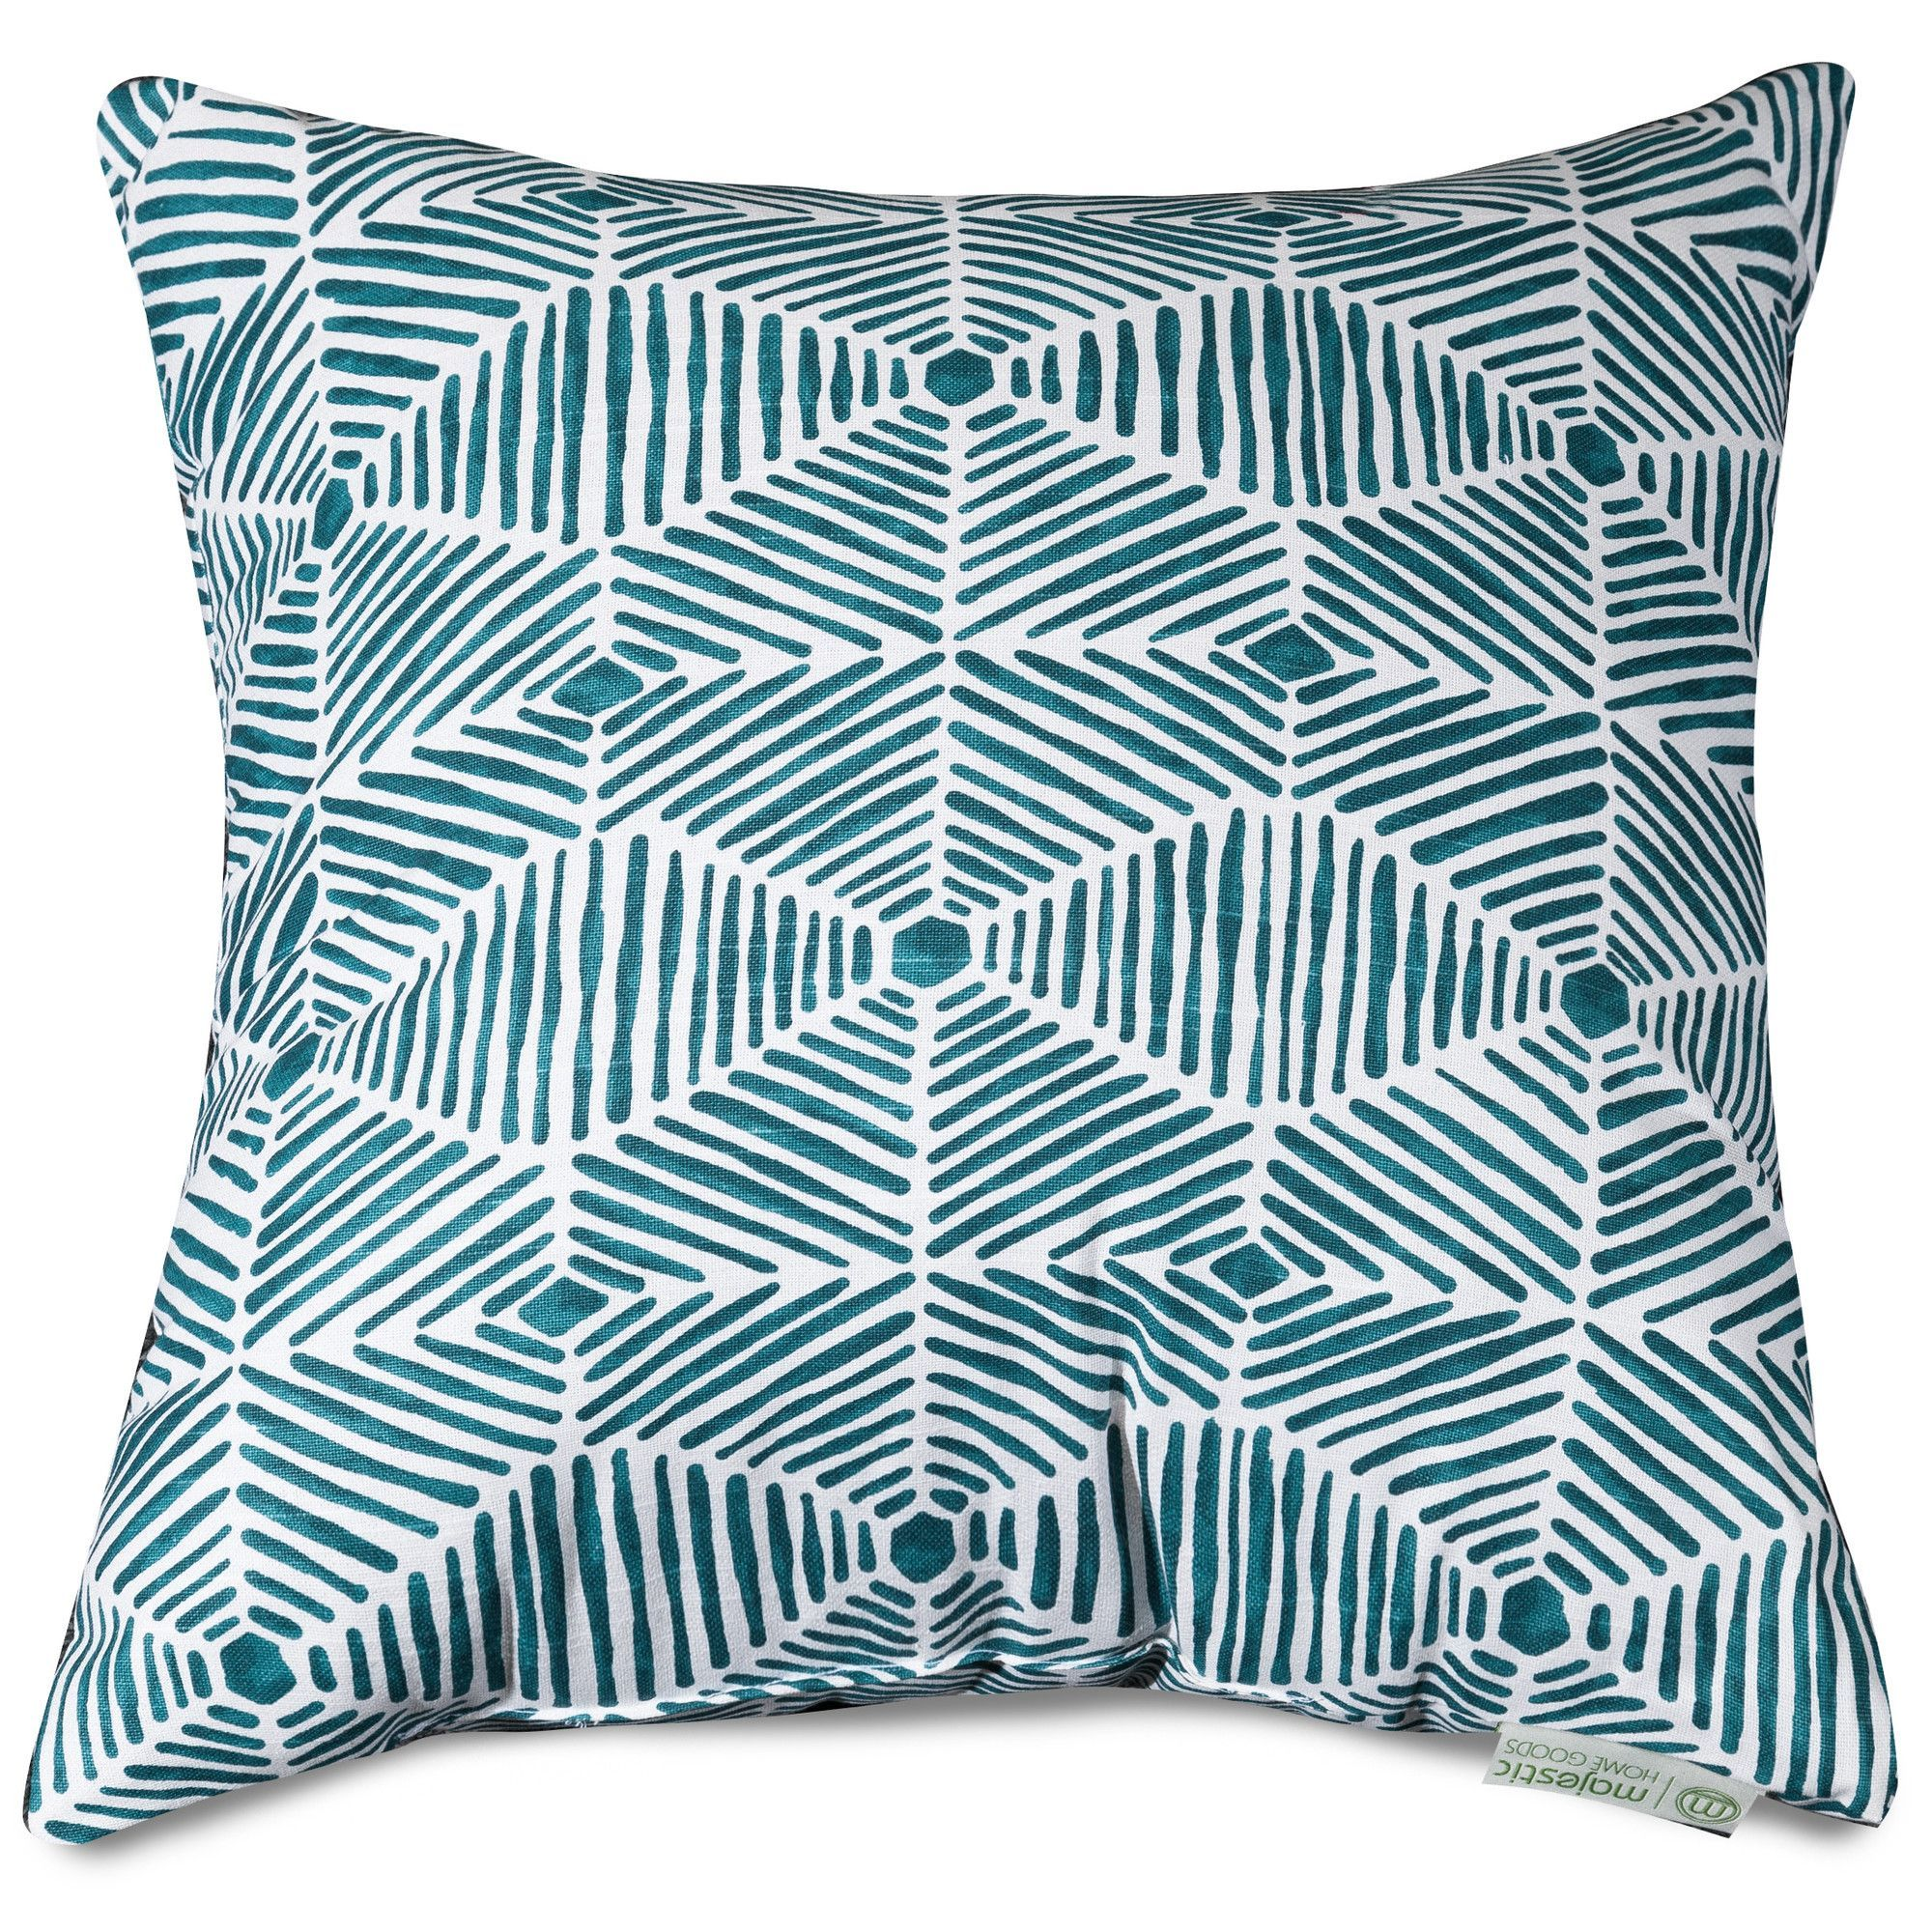 Charlie throw pillow throw pillows pillows and products